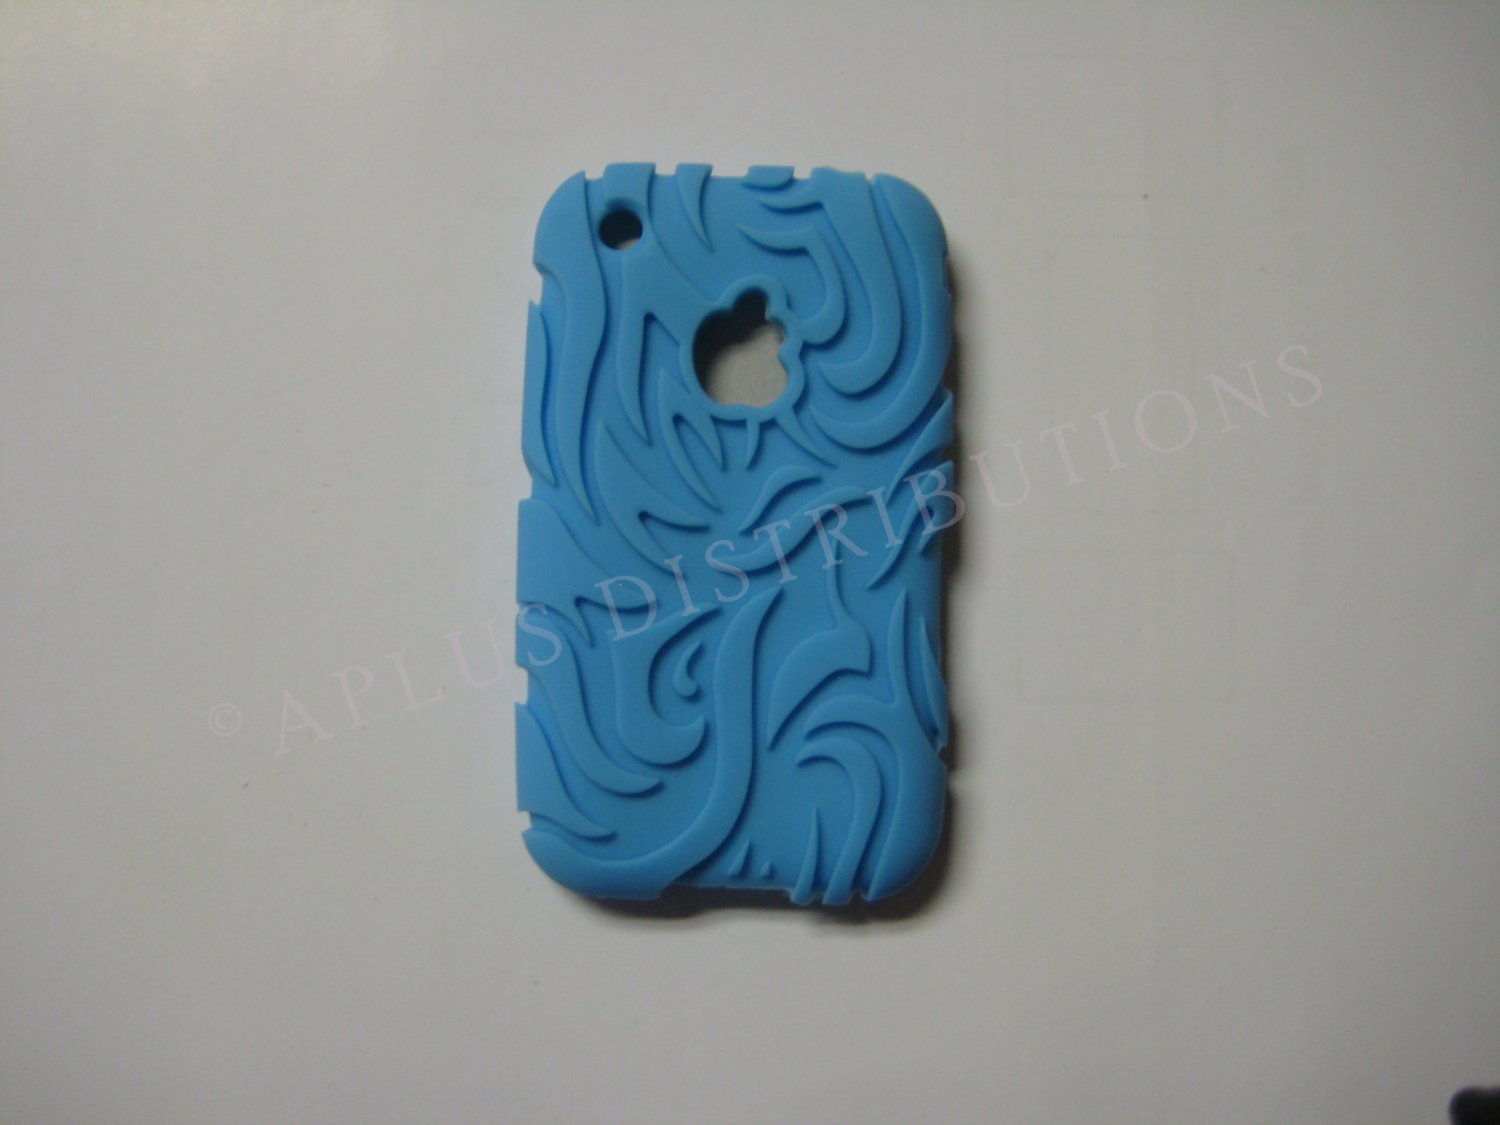 New Light Blue Tribal Design Silicone Cover For iPhone 3G 3GS - (0046)